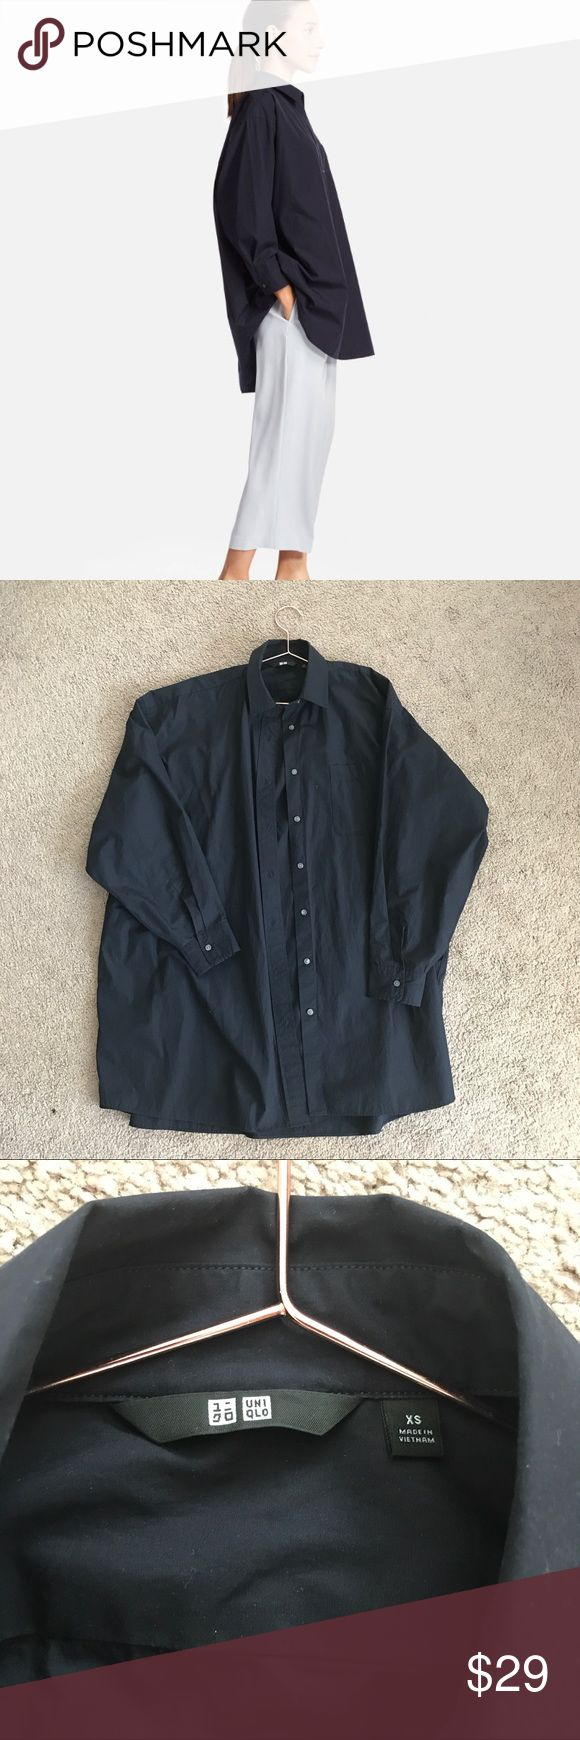 UNIQLO extra fine cotton shirt | oversised fit Dark blue Uniqlo shirt in relaxed oversized fit. Worn 2X. Length 32inch Uniqlo Tops Blouses